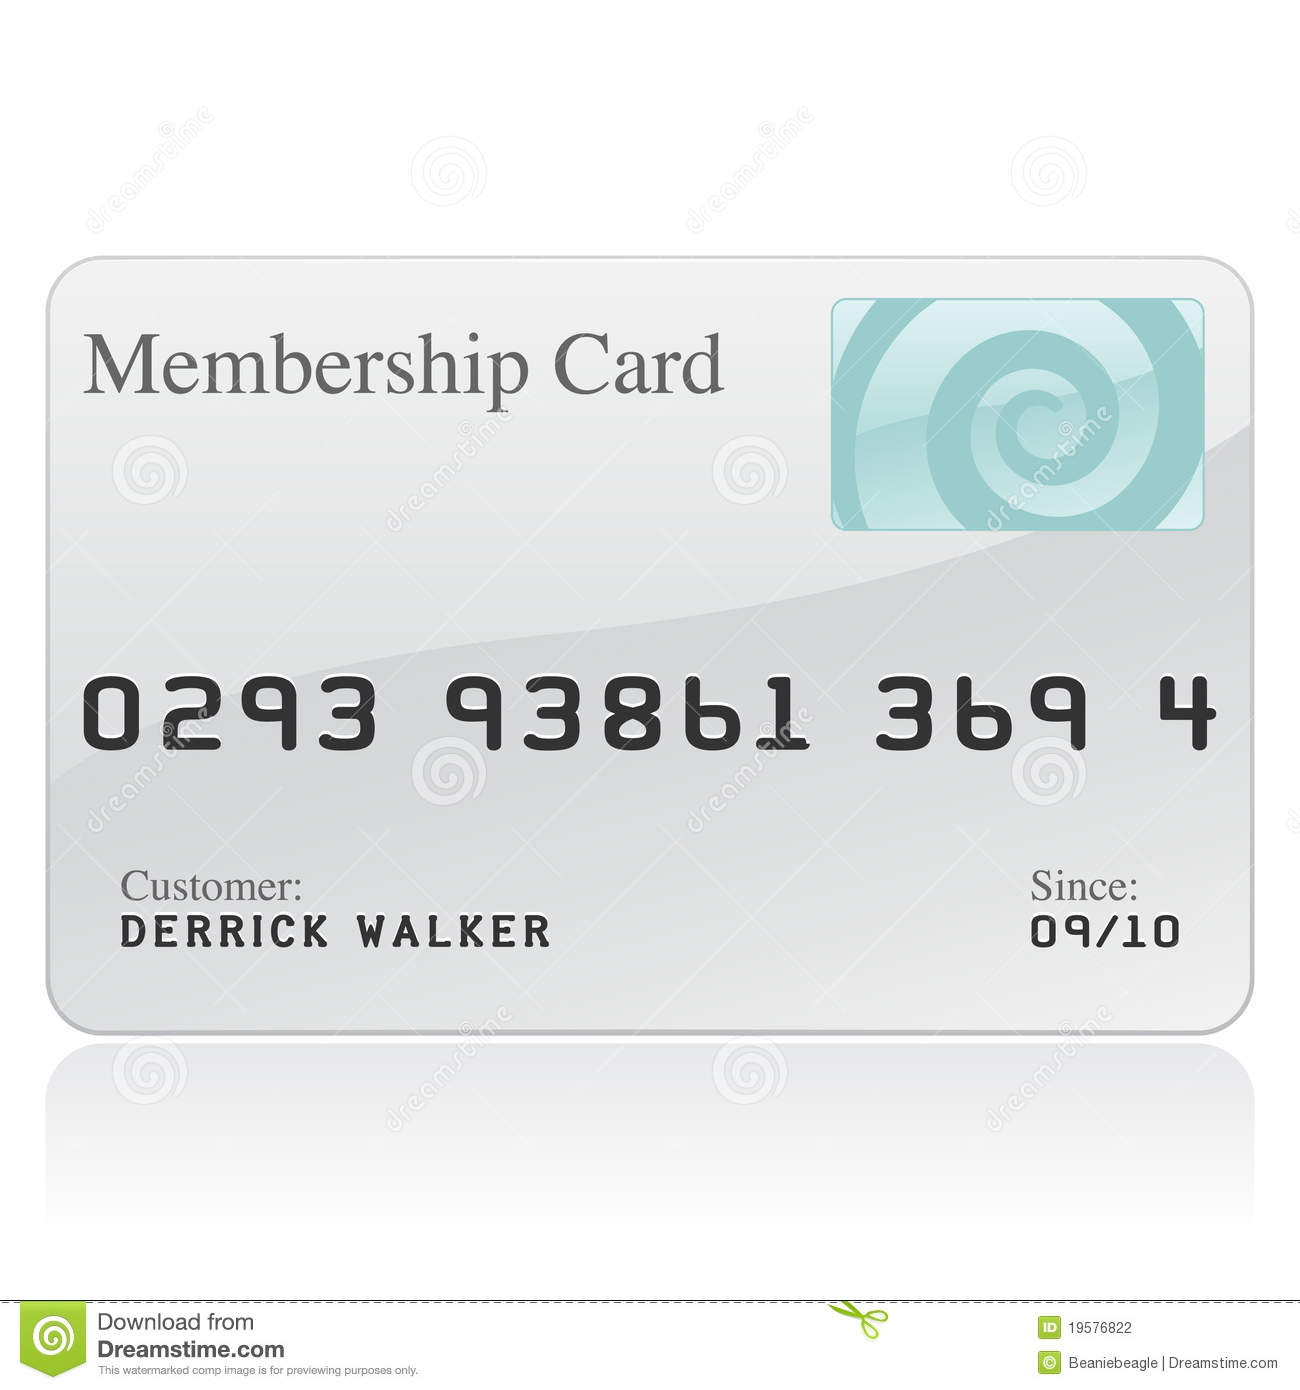 Membership Card Stock Illustrations U2013 2,678 Membership Card Stock  Illustrations, Vectors U0026 Clipart   Dreamstime  Club Membership Card Template